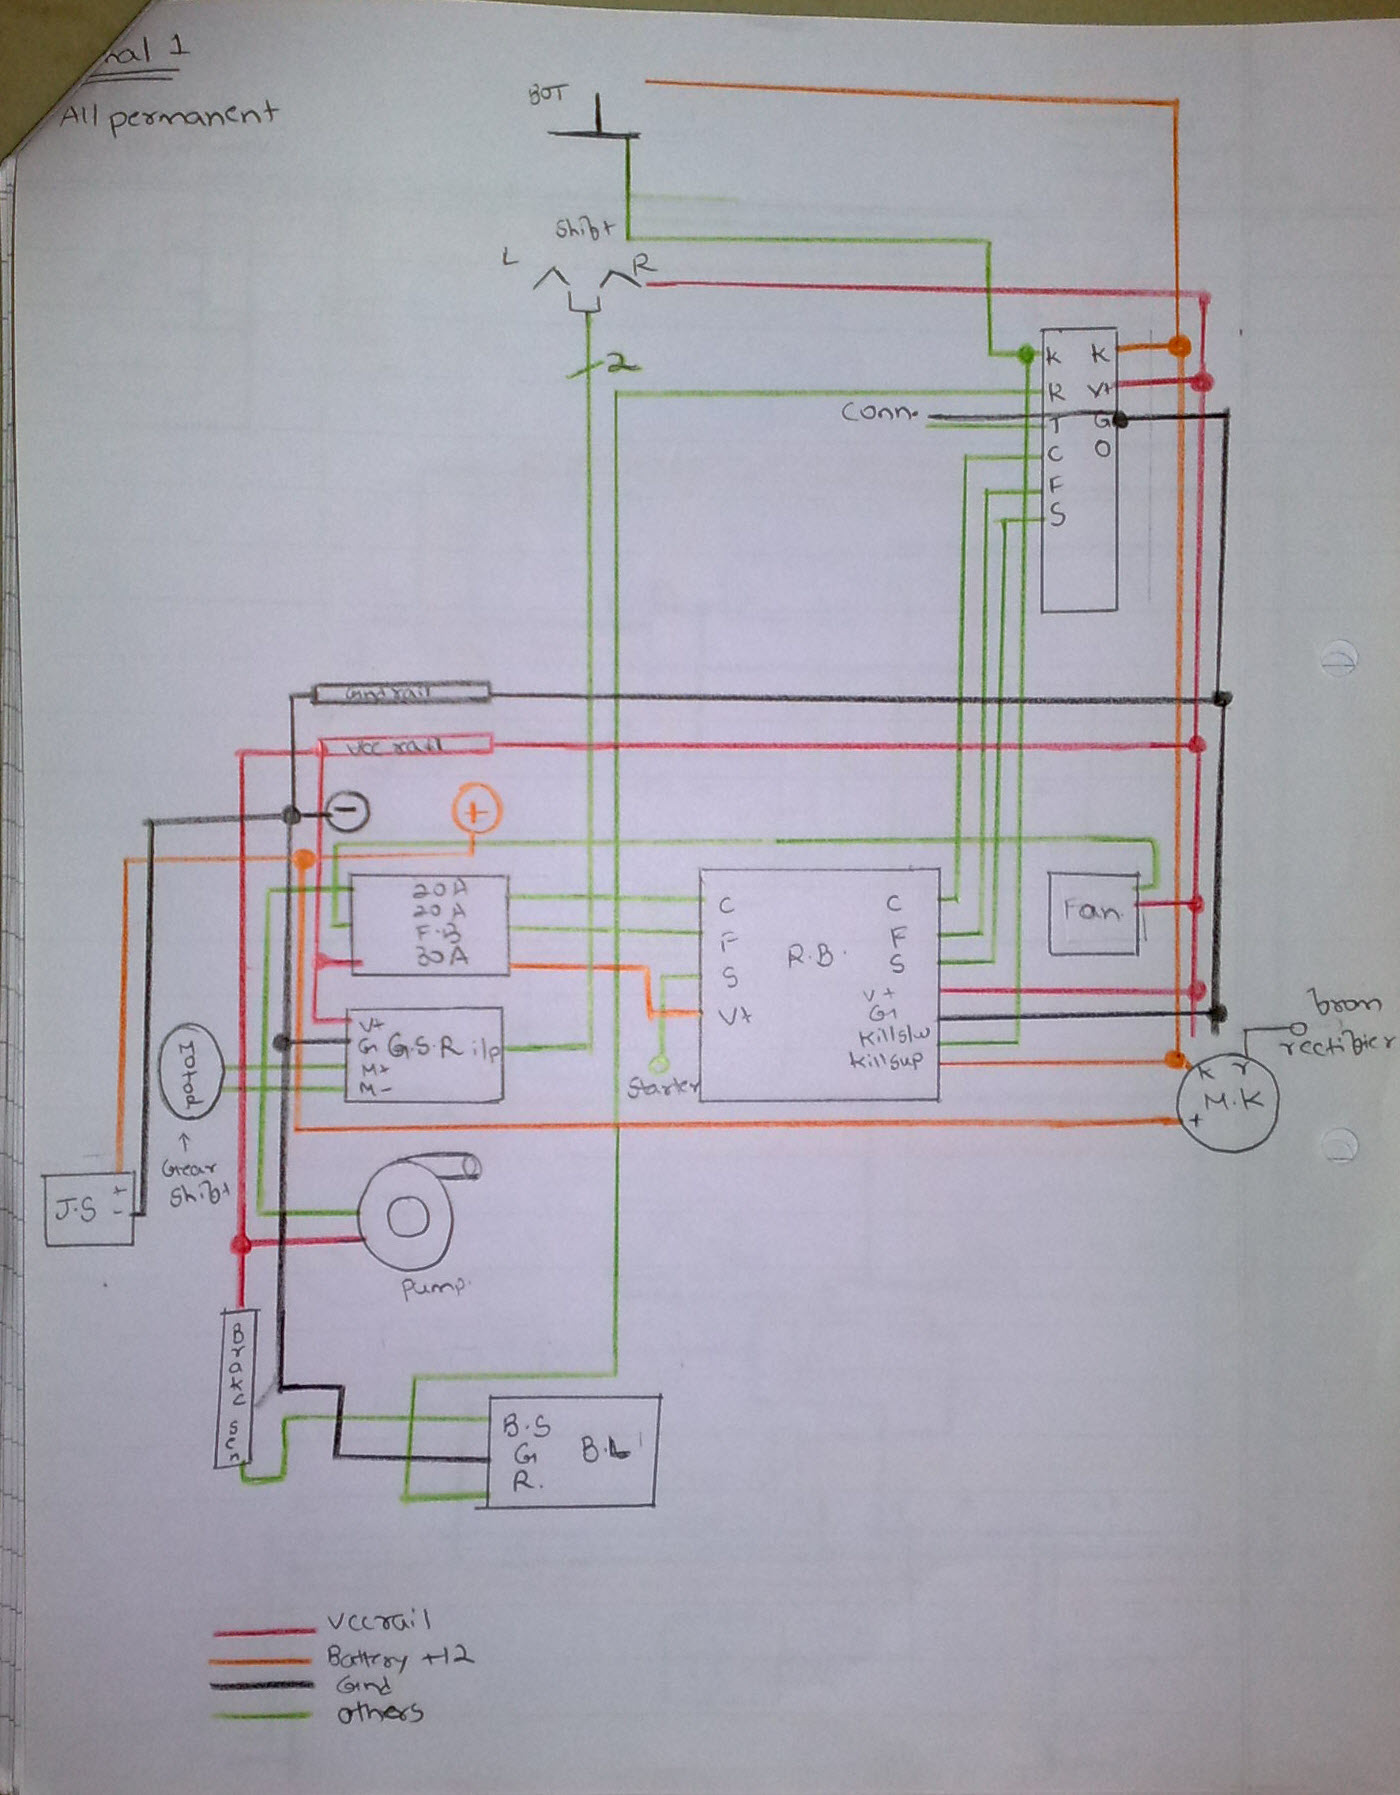 hight resolution of sae 12v wiring diagram wiring librarysae 12v wiring diagram